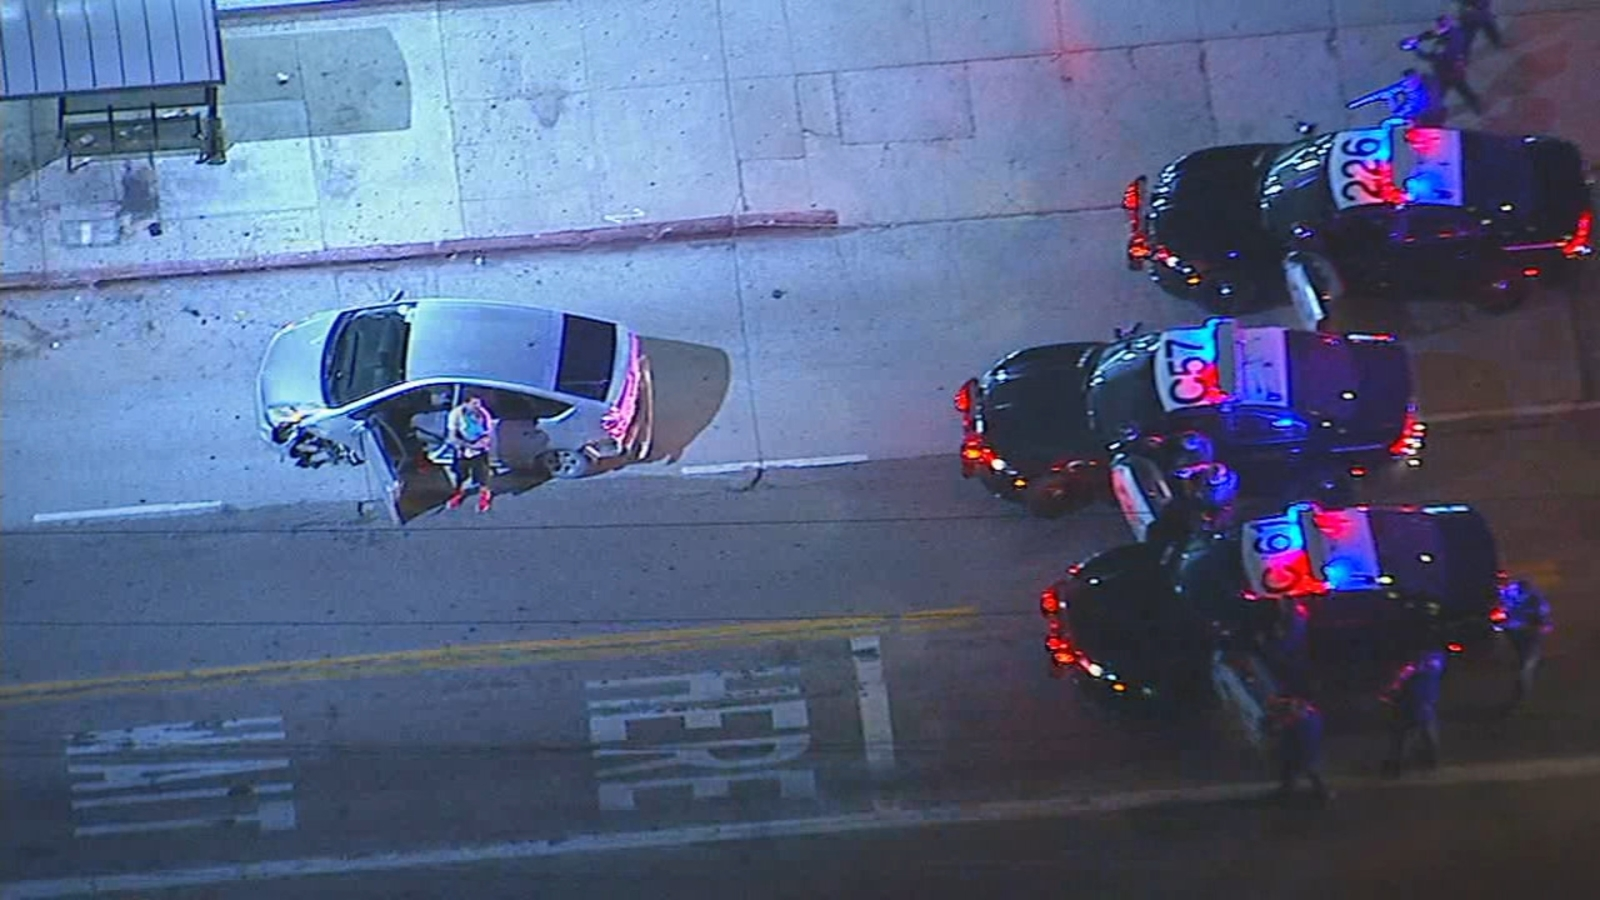 Chase ends in Crenshaw District with suspect surrendering child to authorities